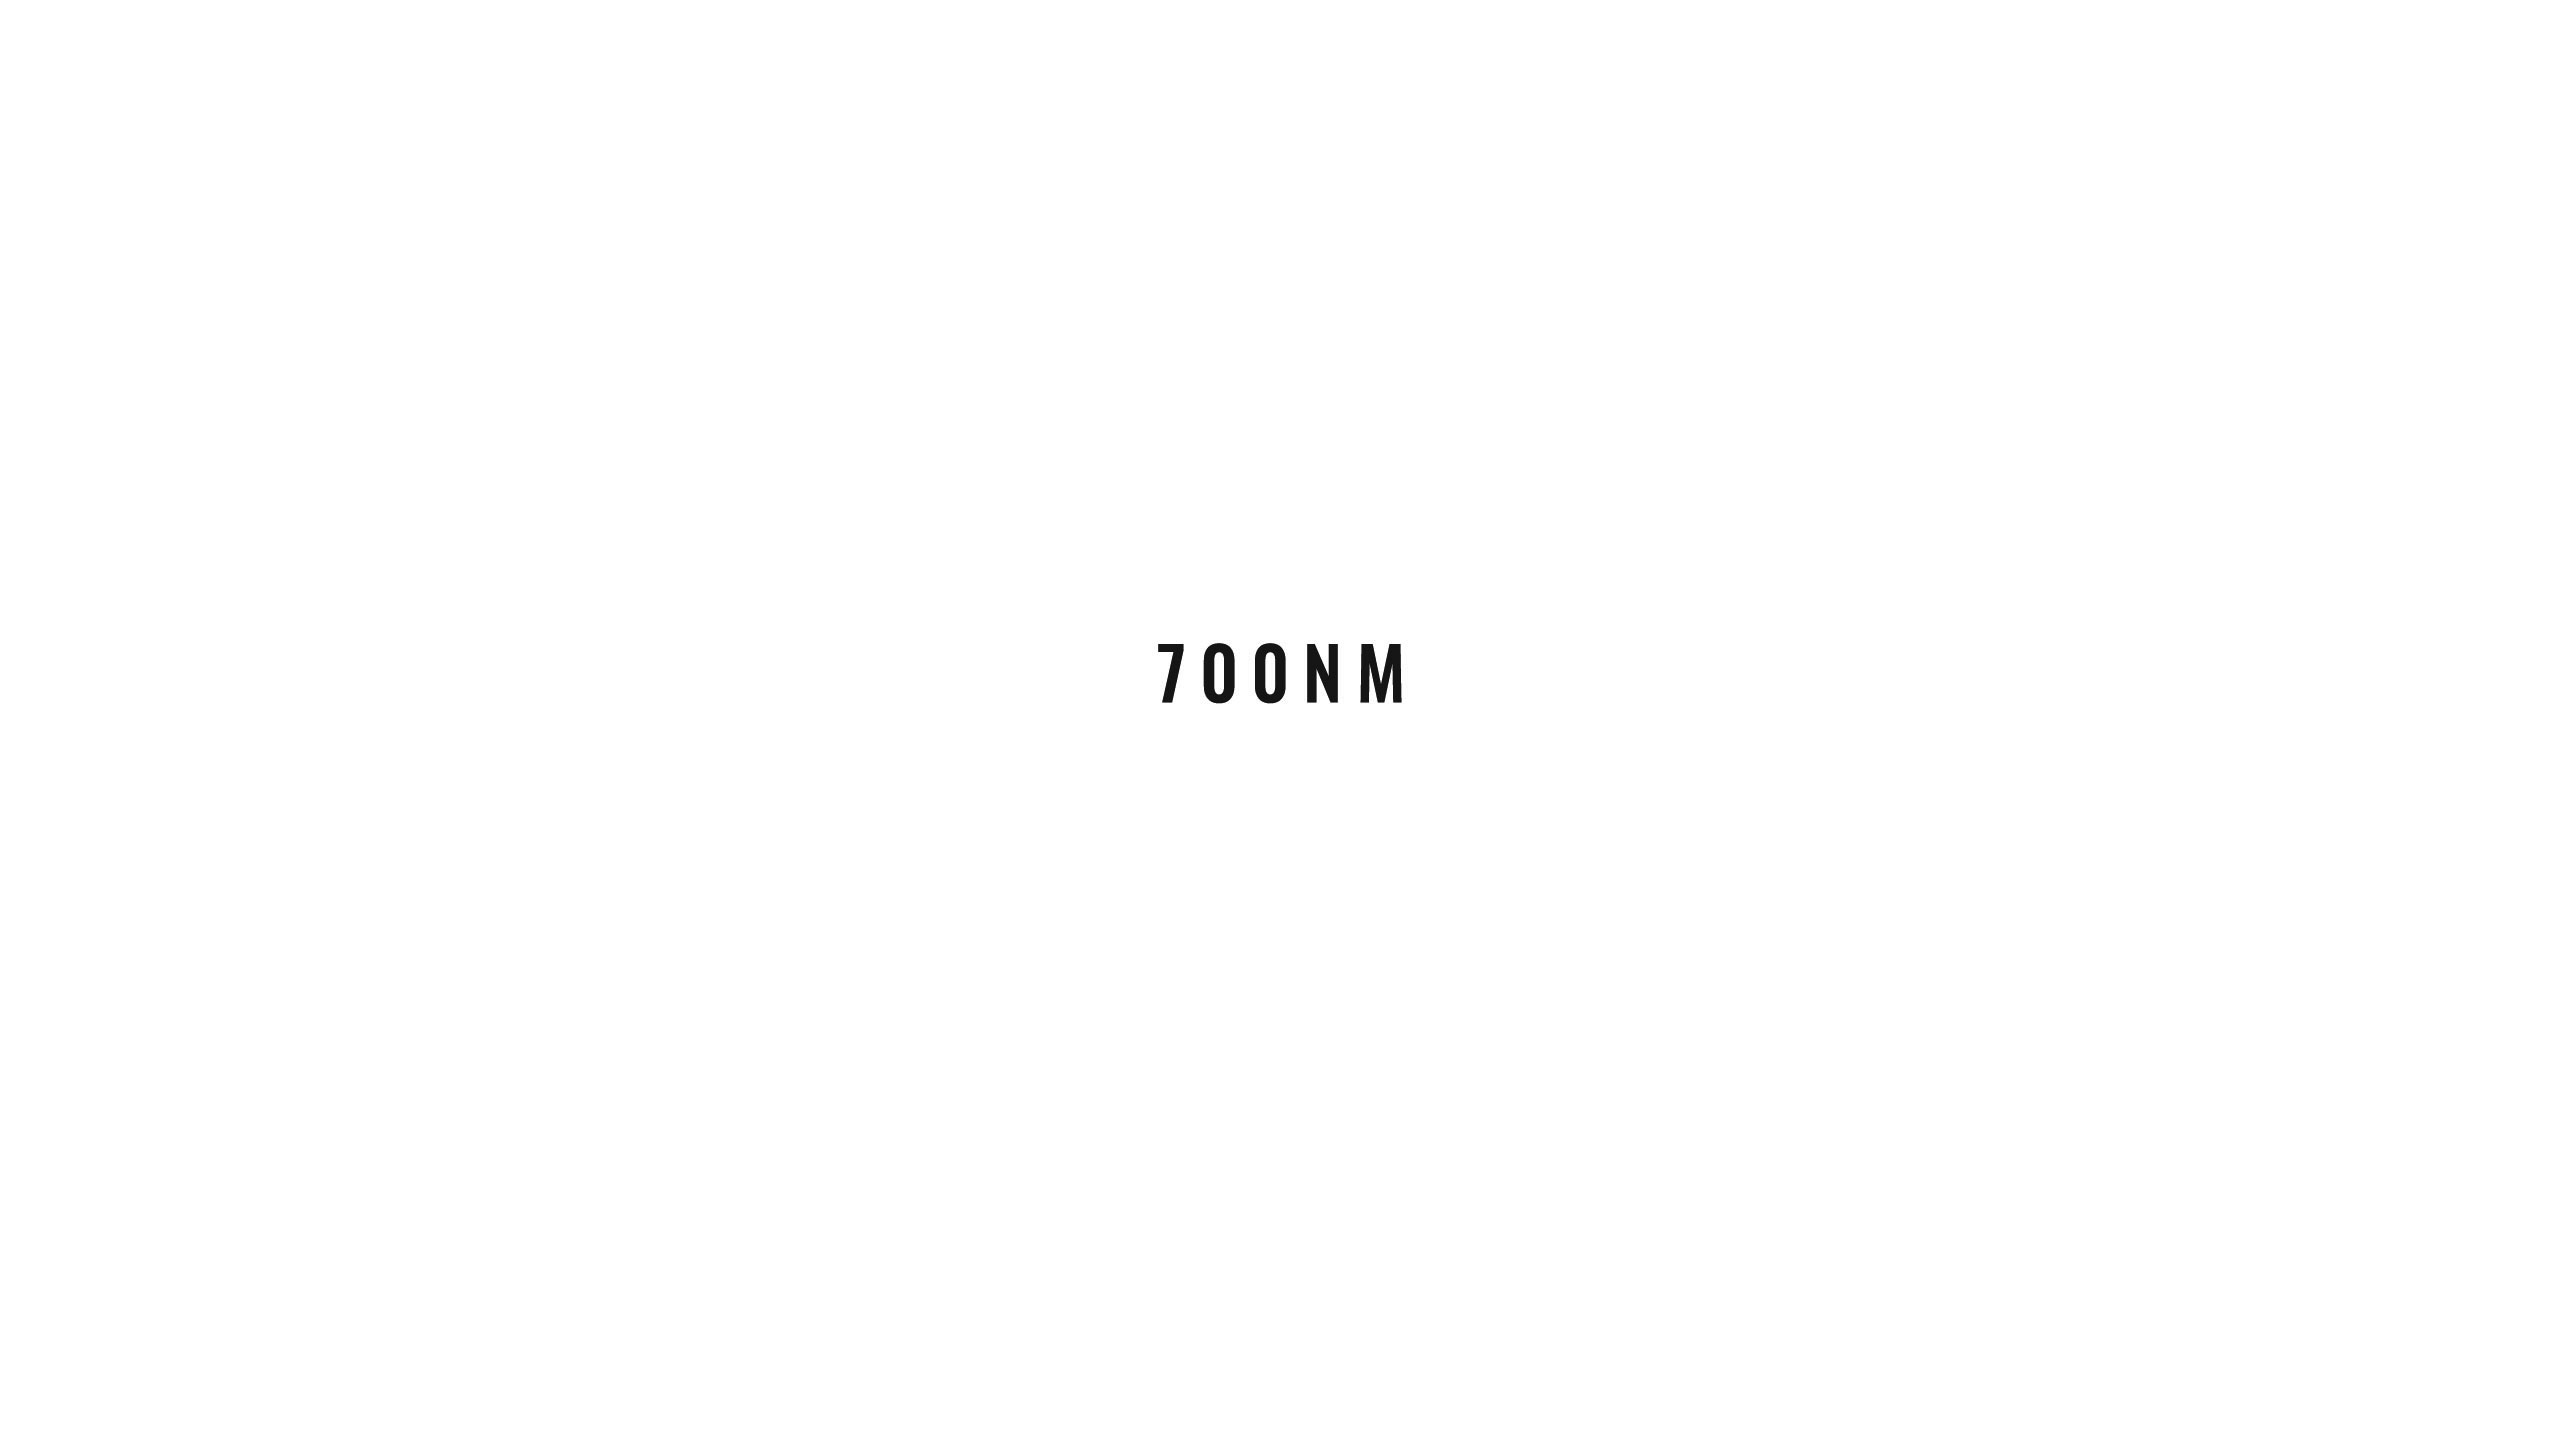 1a_Text_700NM